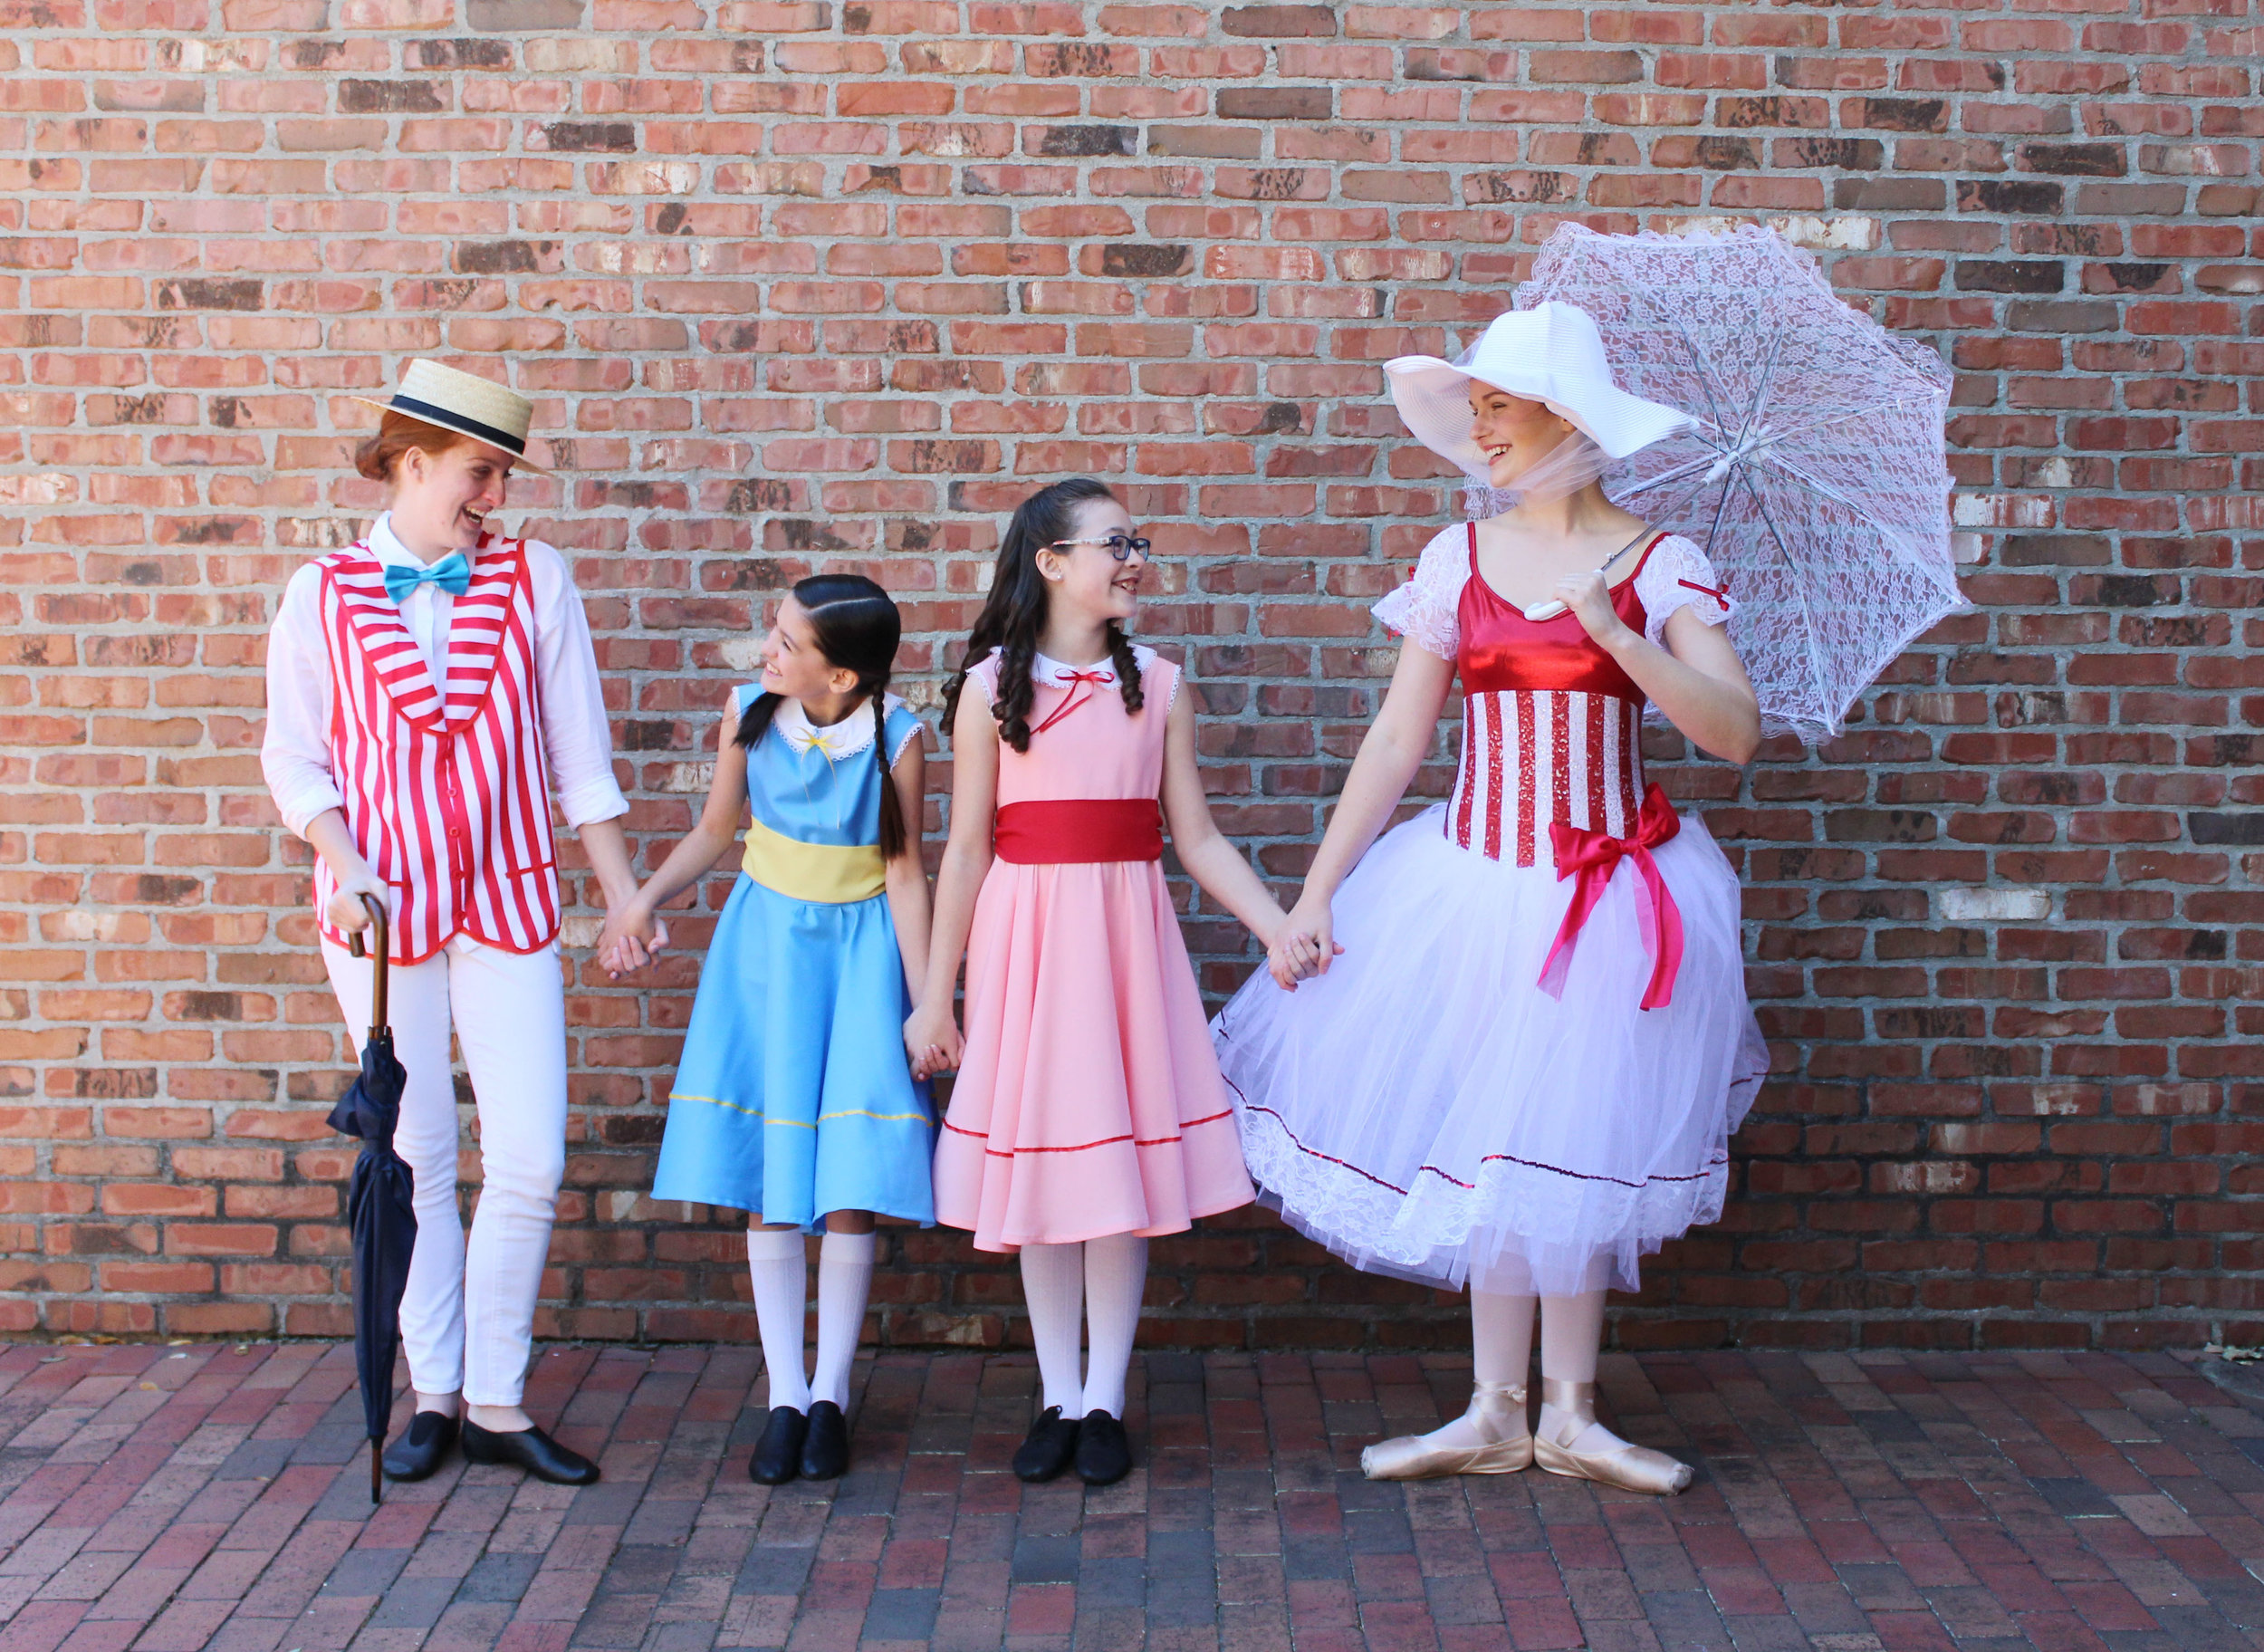 Candid, Four Standing - IMG_1153.JPG